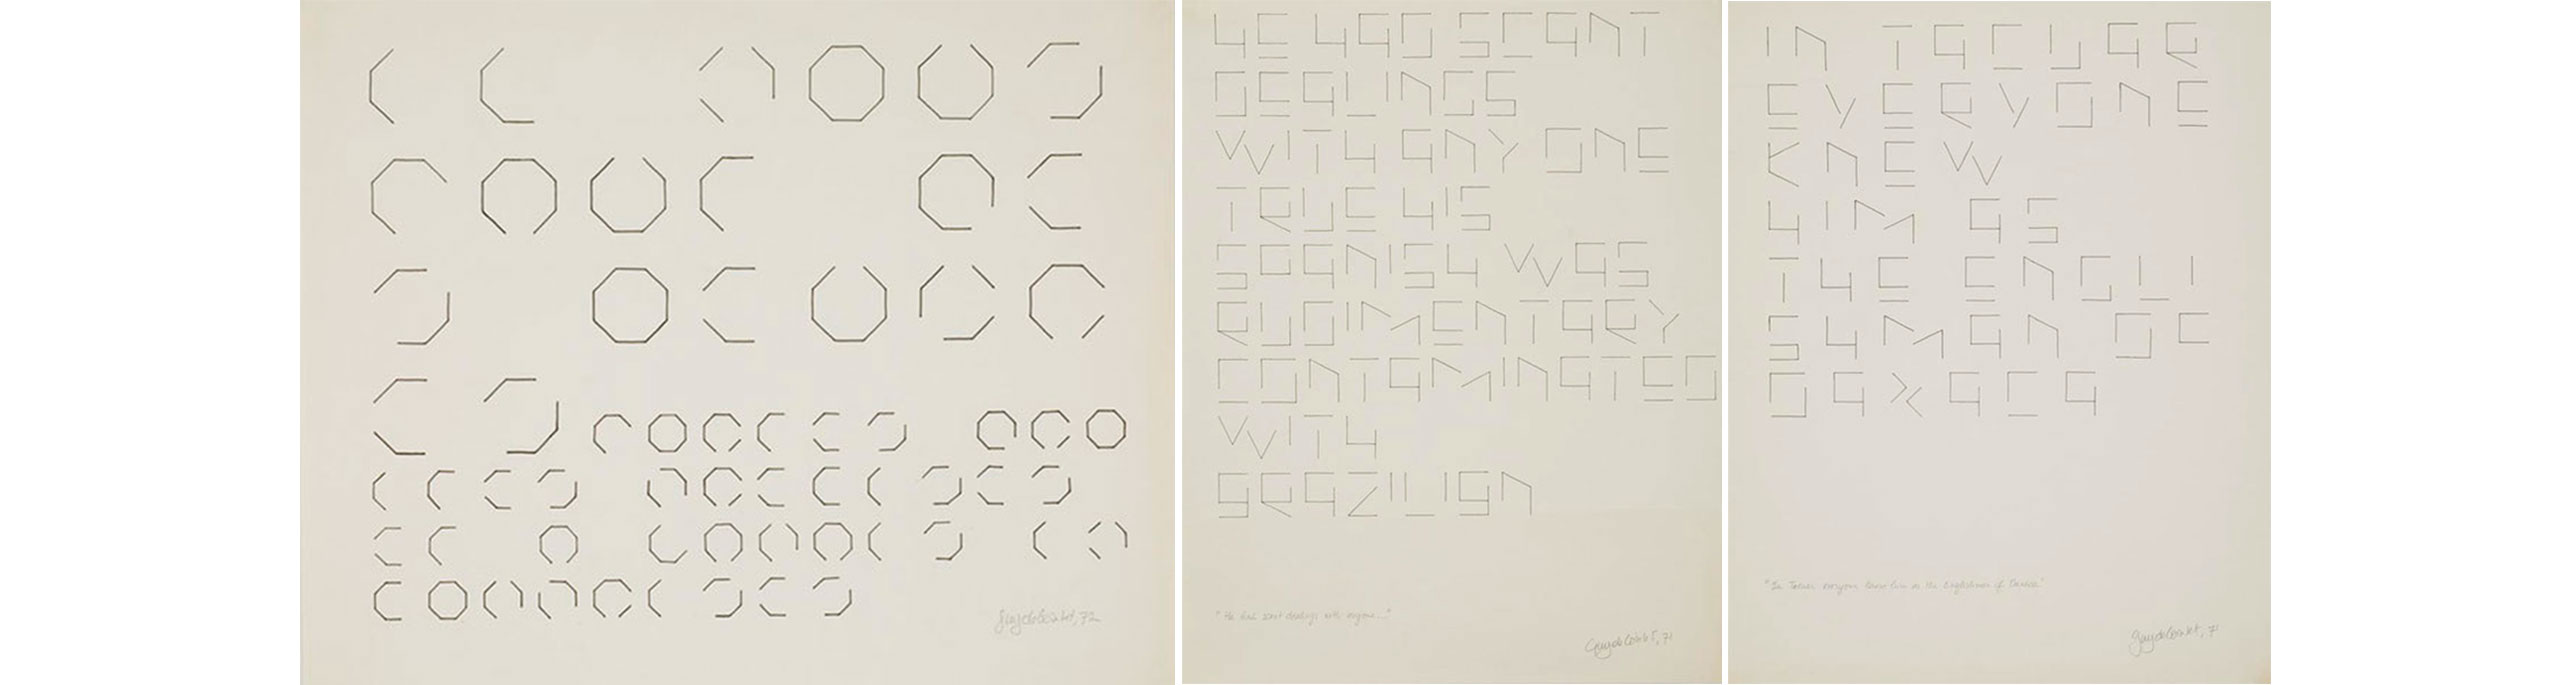 Guy-de-Cointet-alphabets